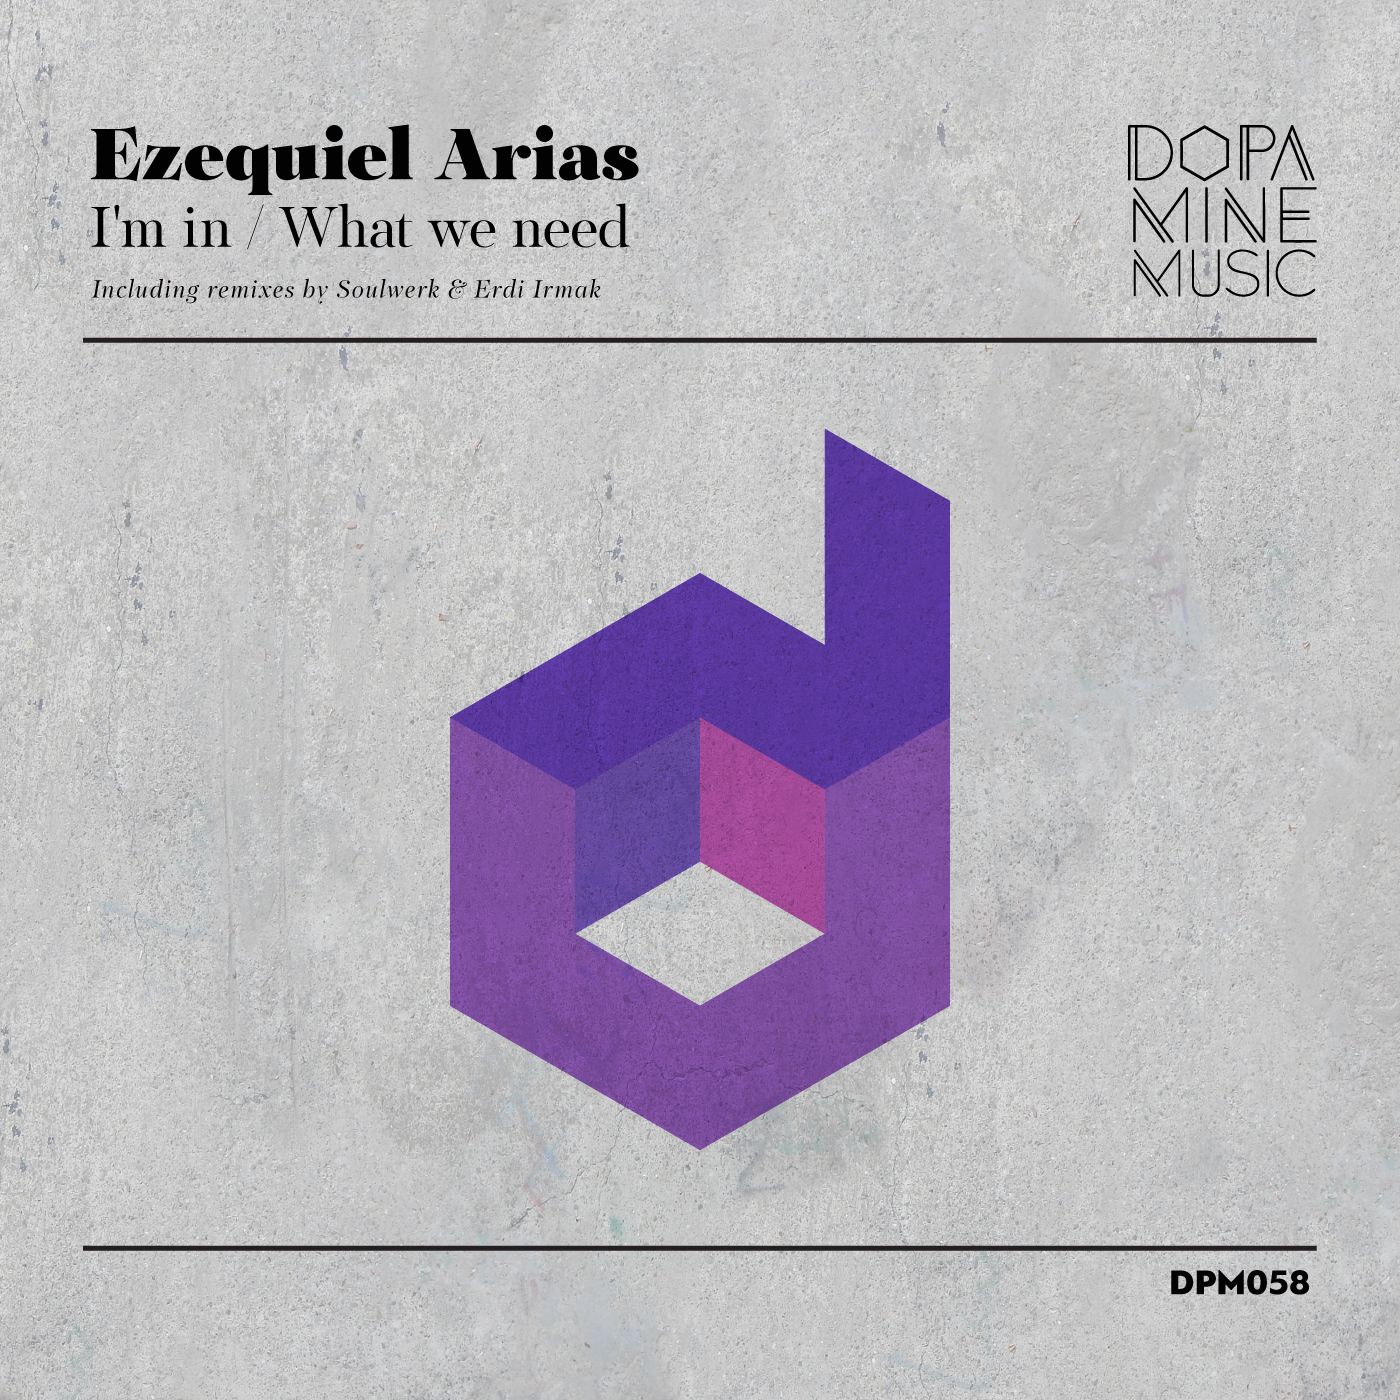 Ezequiel Arias - I'm In / What We Need (Dopamine Music)